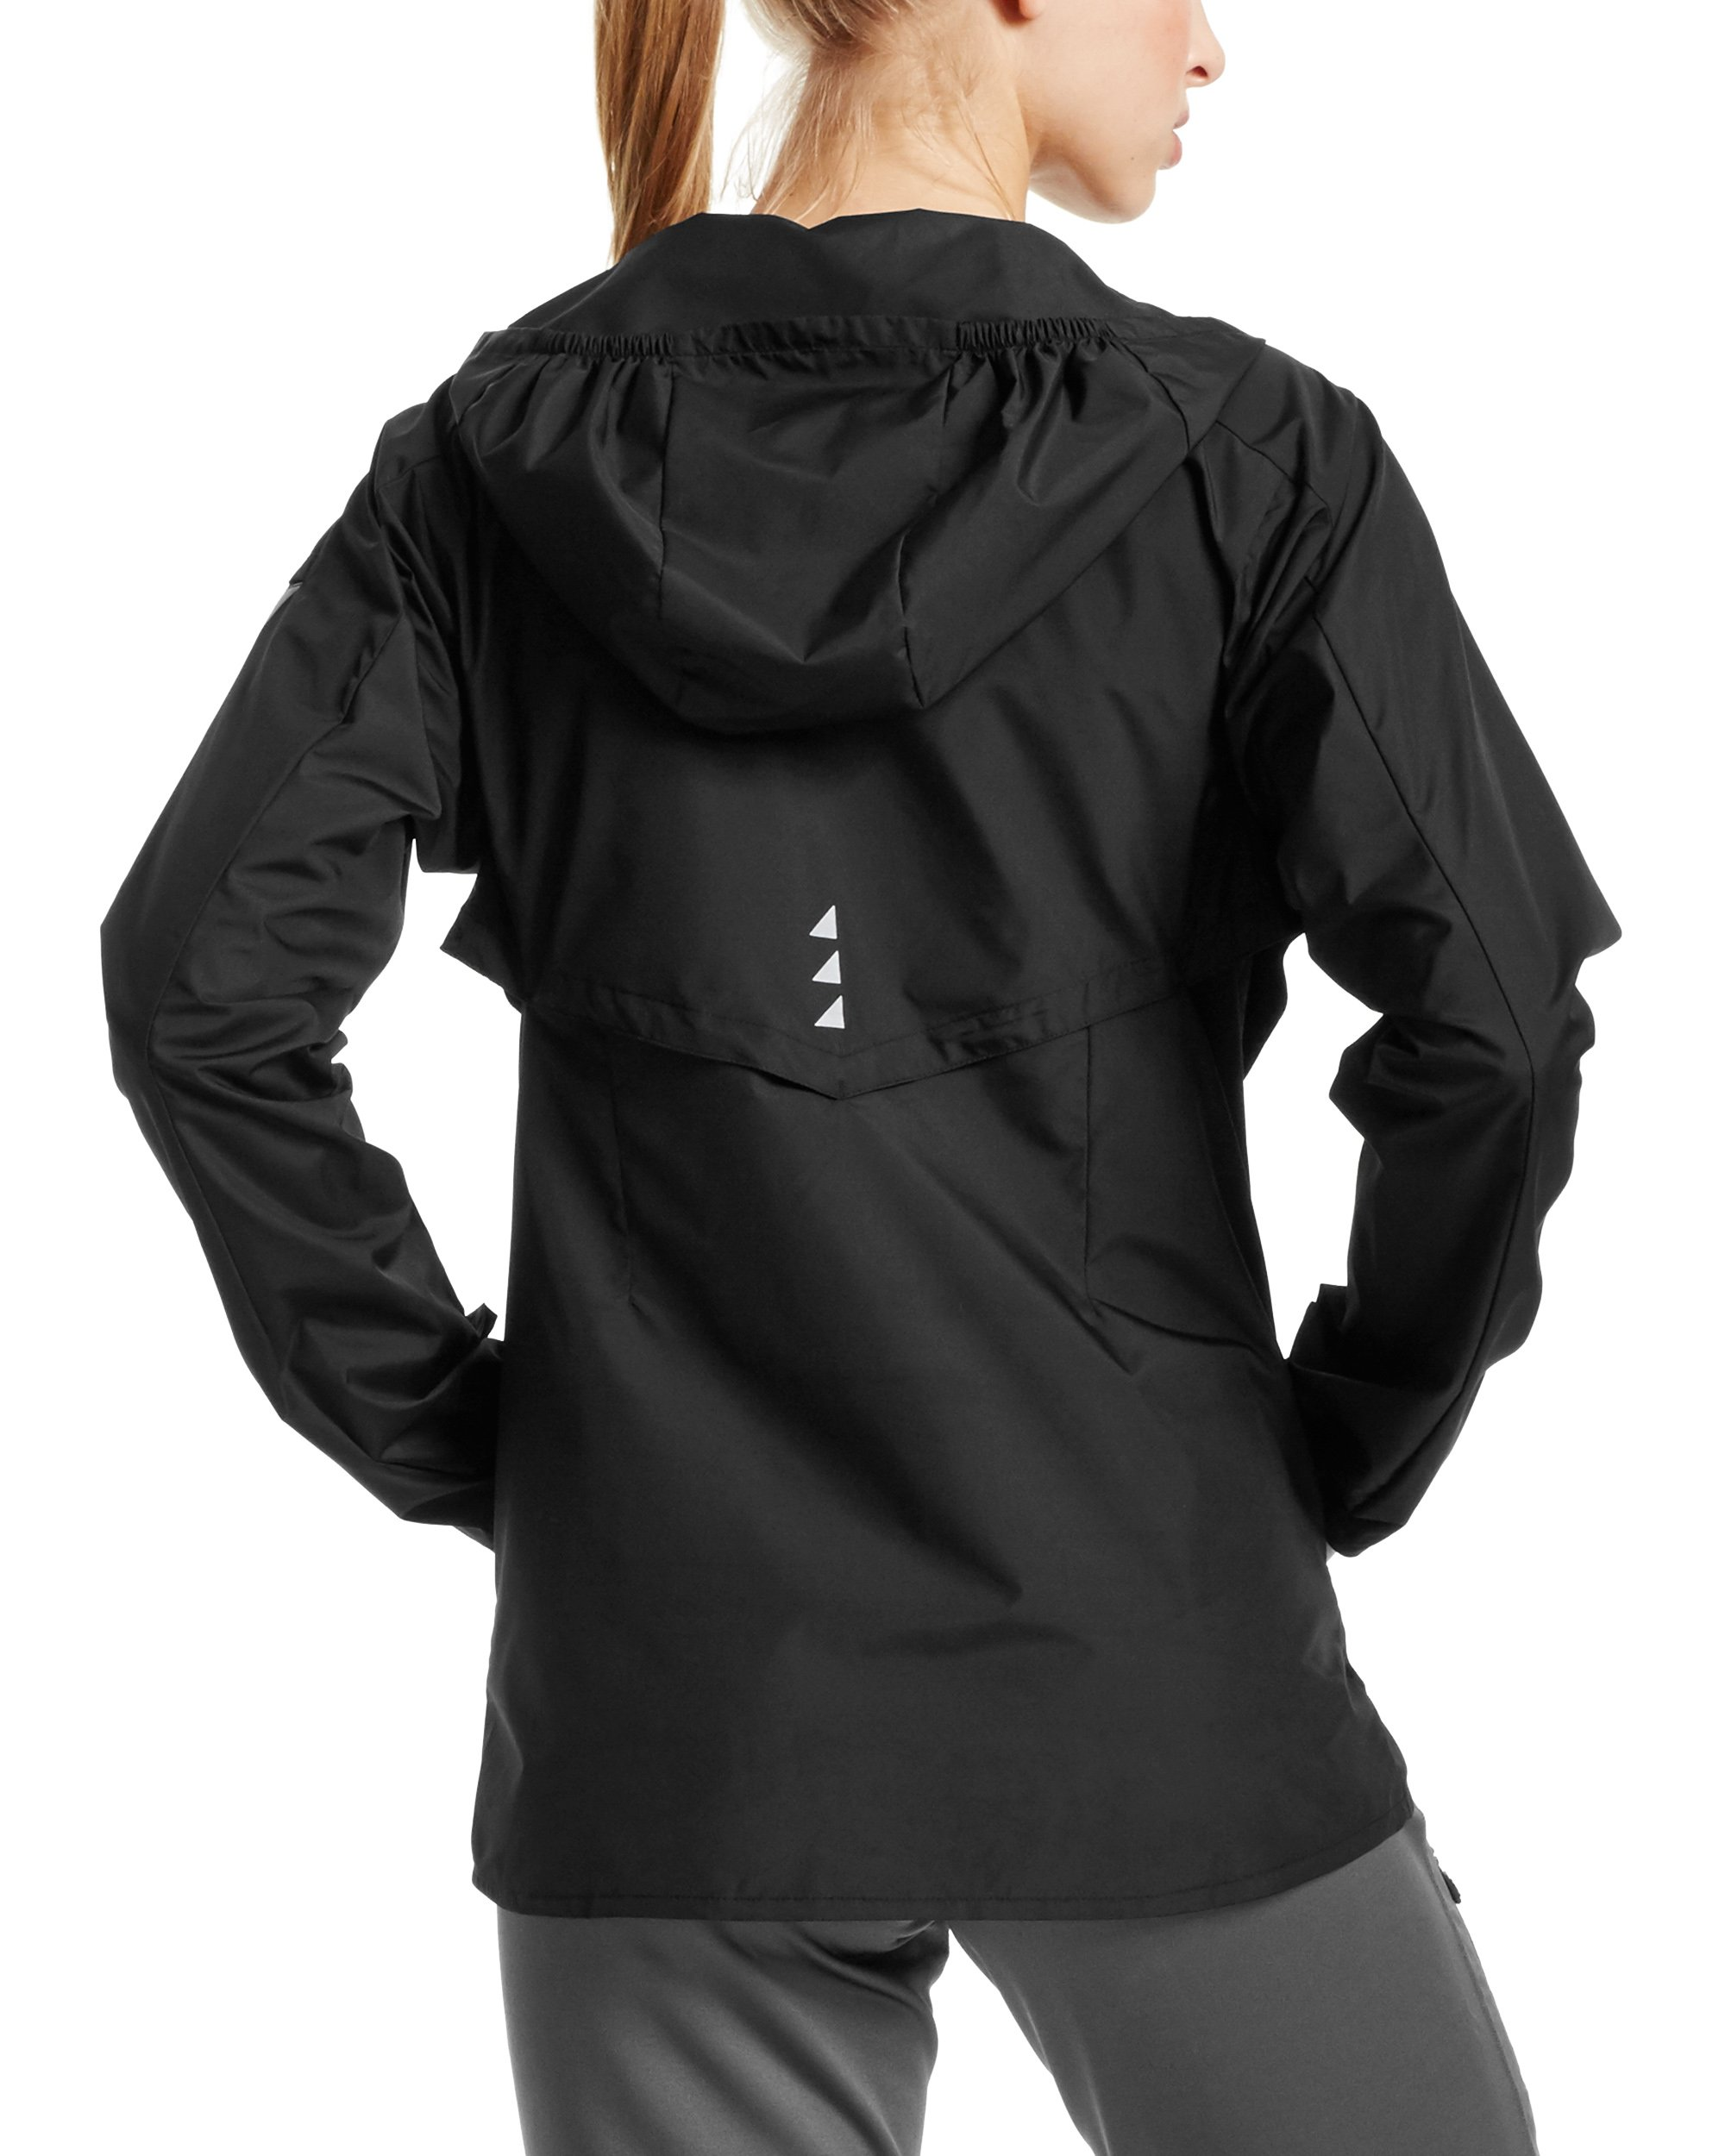 Mission Women's VaporActive Barometer Running Jacket, Moonless Night, Large by MISSION (Image #2)